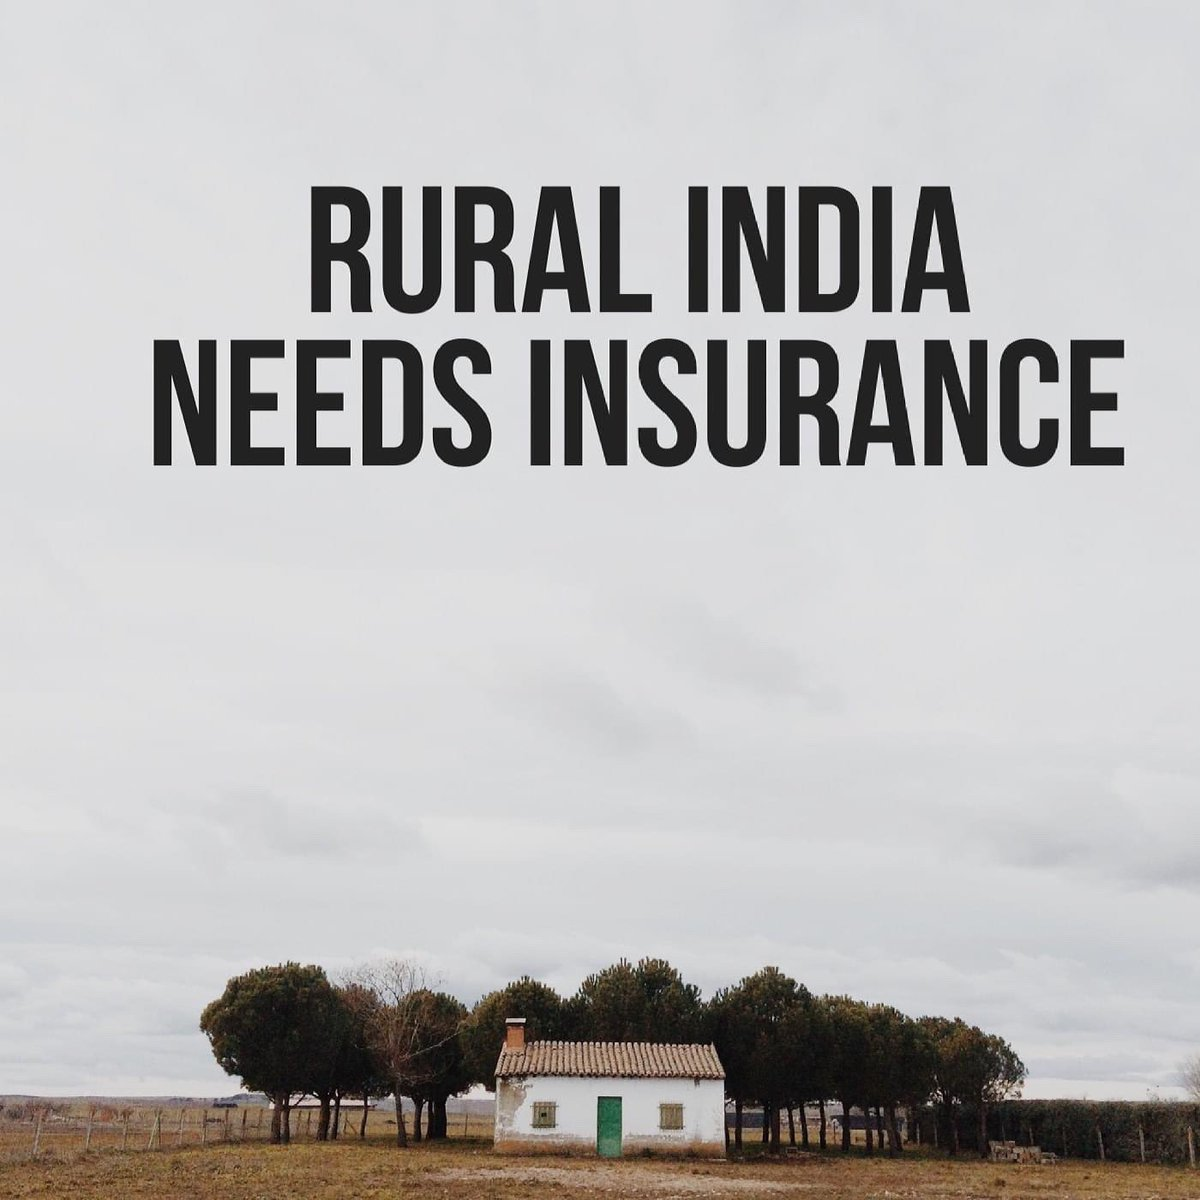 If we must grow the penetration of insurance, we must have simple products which create value since 70% of the population still lives in rural areas!To know more visit.                .                           #ruralindia #insurance #like #follow #comment